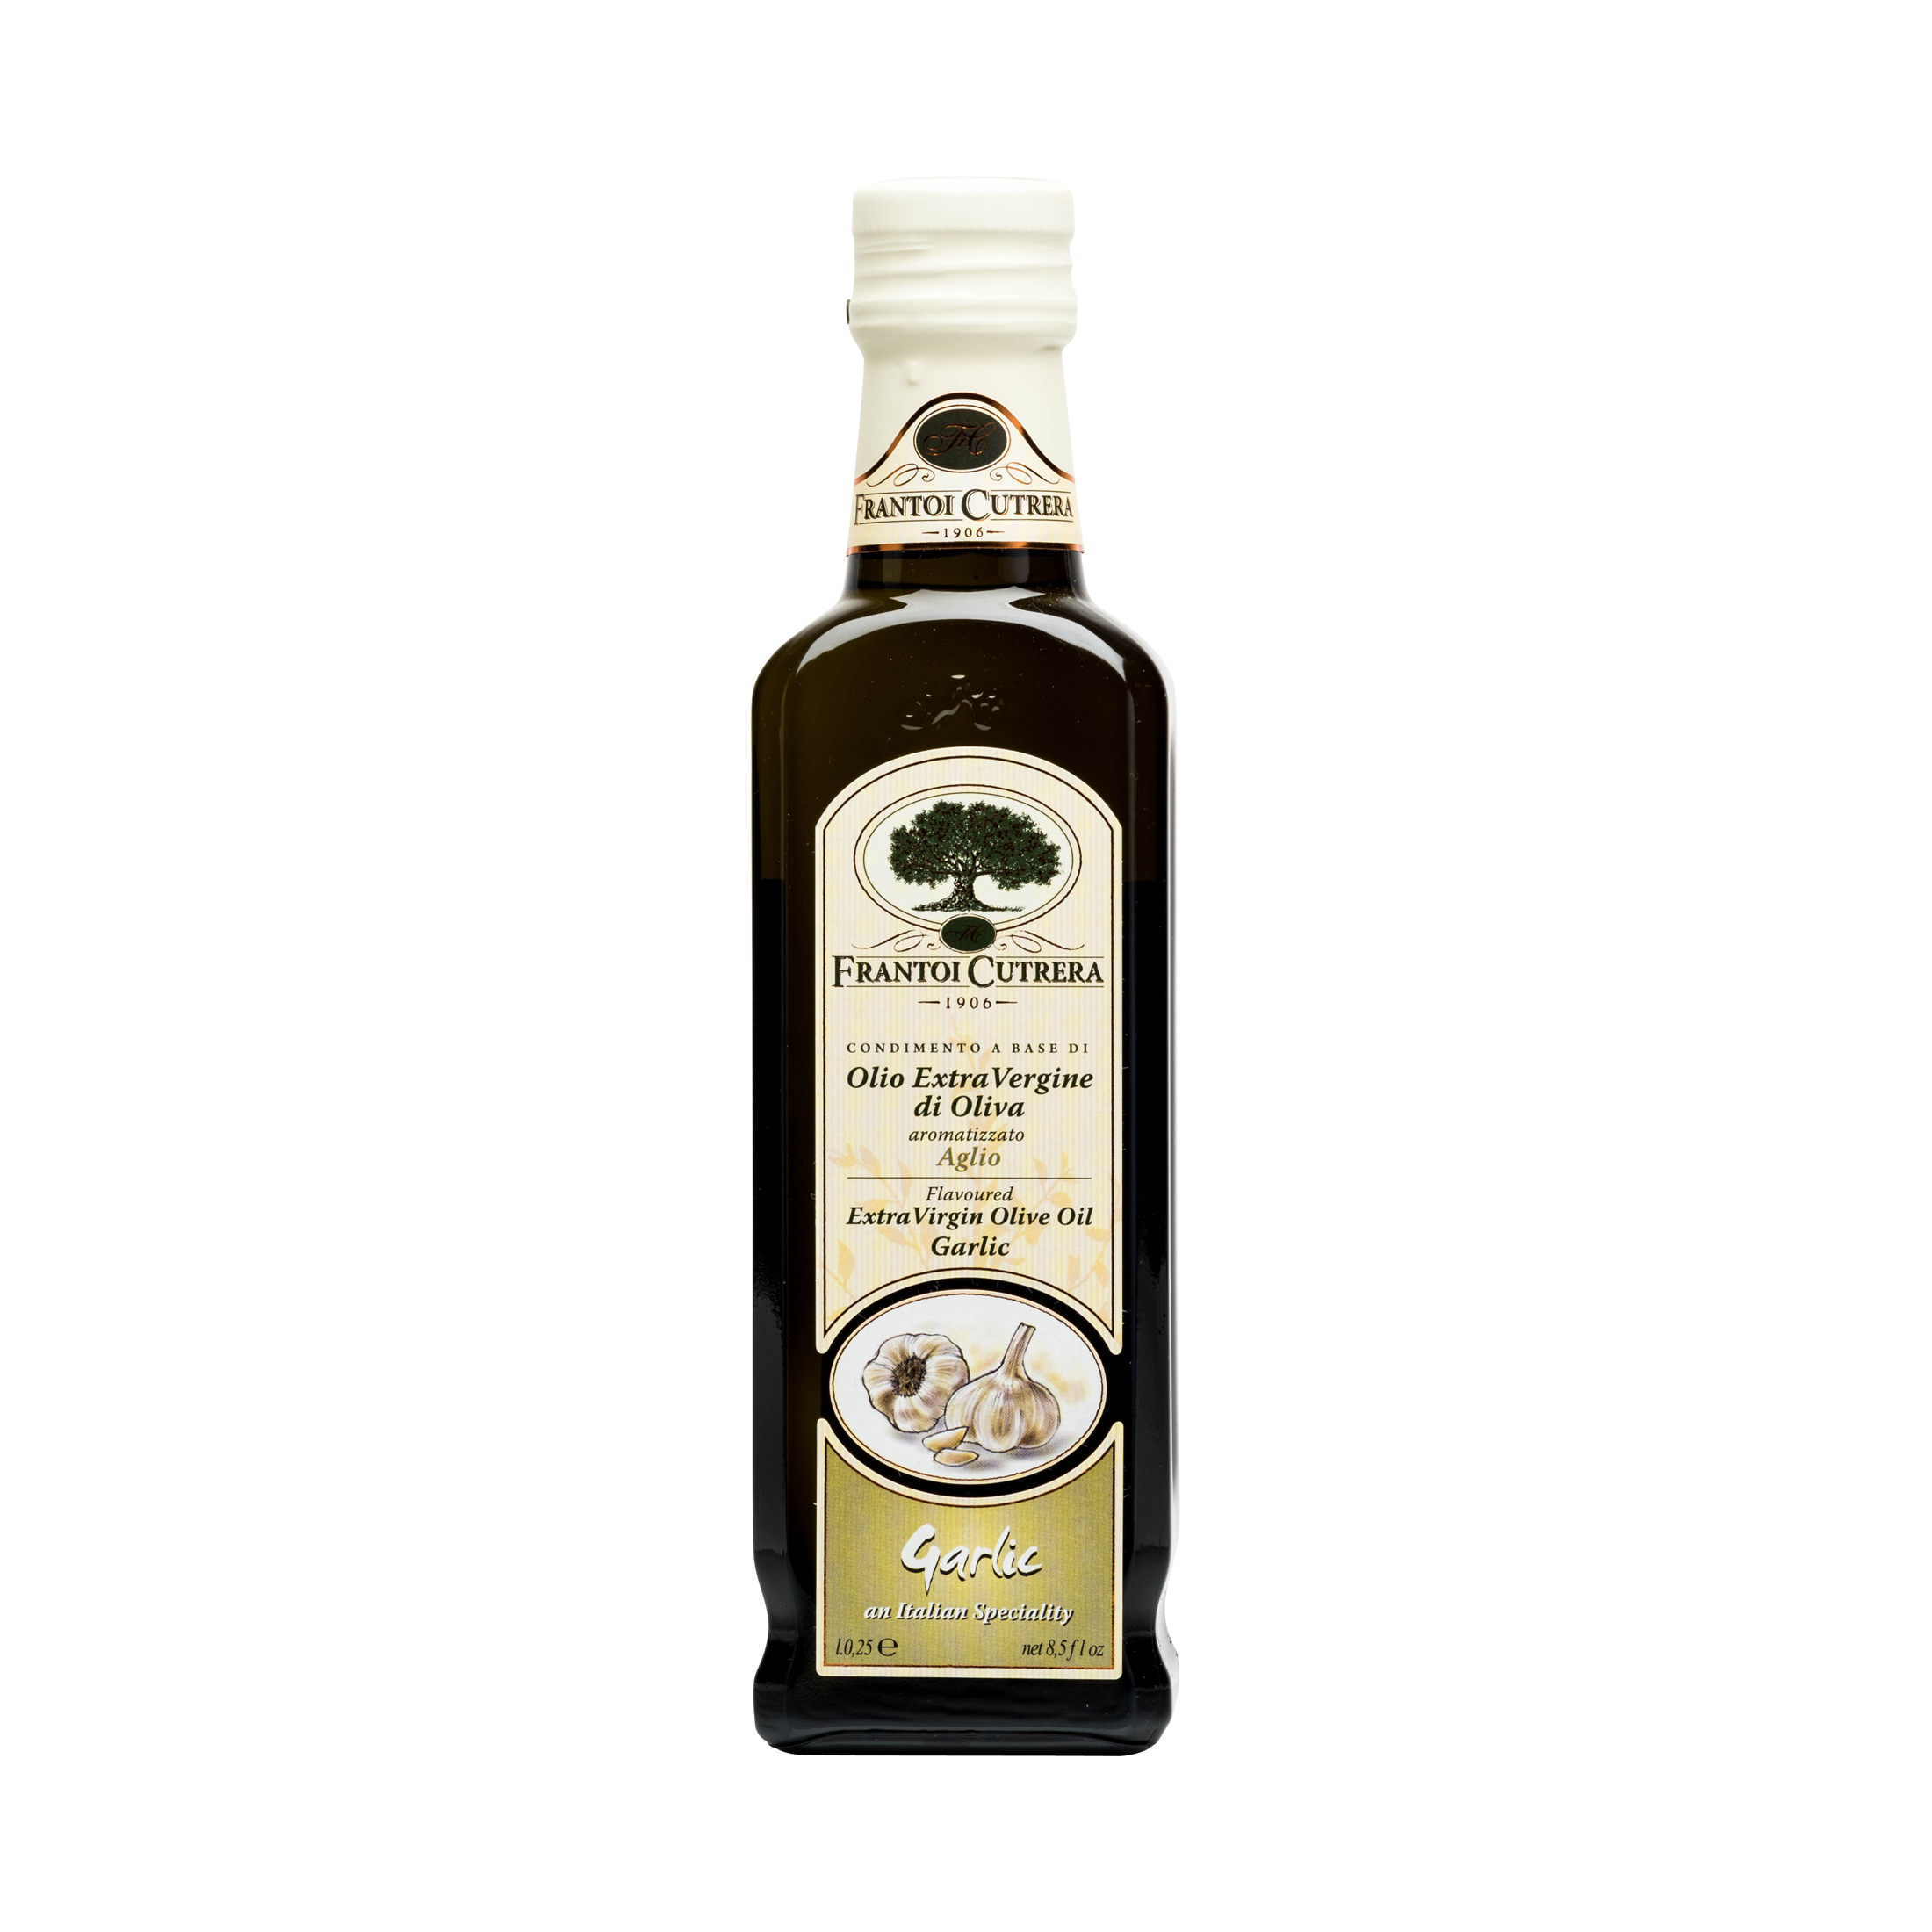 CUTRERA GARLIC EXTRA VIRGIN OLIVE OIL